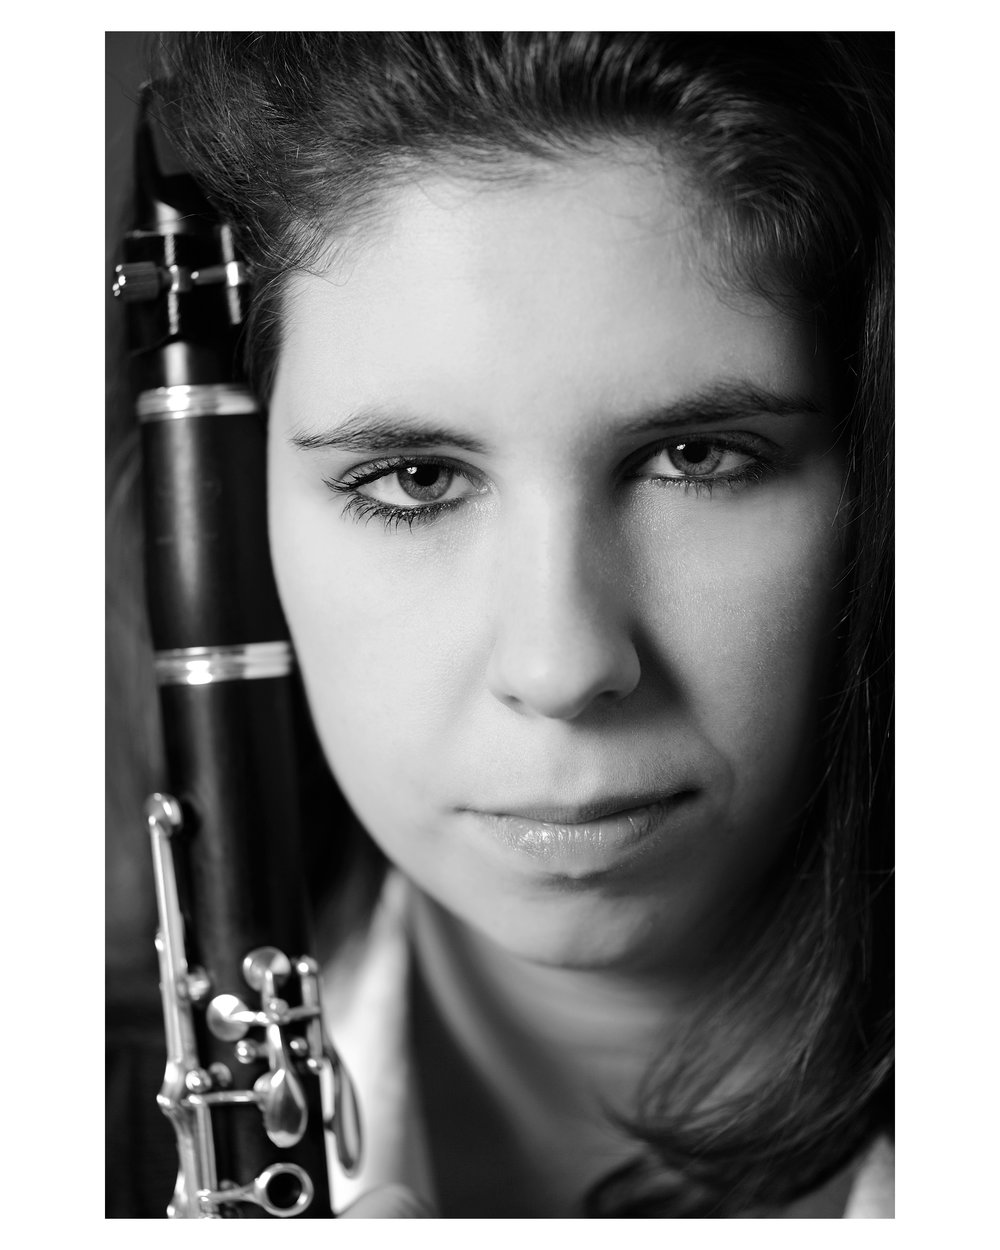 Jennfier Hughson, clarinets   Clarinetist Jennifer Hughson is a vibrant musician who has performed throughout the US, Ireland and Italy. She has played with the Baltimore Chamber Orchestra, The American Pops Orchestra, the Mid-Atlantic Symphony Liberty Wind Symphony, and is a member of the Mind on Fire New Music Ensemble. She also teaches a studio privately throughout the Baltimore-DC area whose students have earned awards and honors at the county and state level. Ms. Hughson received her BM from Indiana University and her MM from the Peabody Conservatory studying under Howard Klug and Steven Barta. Ms. Hughson can be found on Instagram and YouTube as CharmCityClarinet!